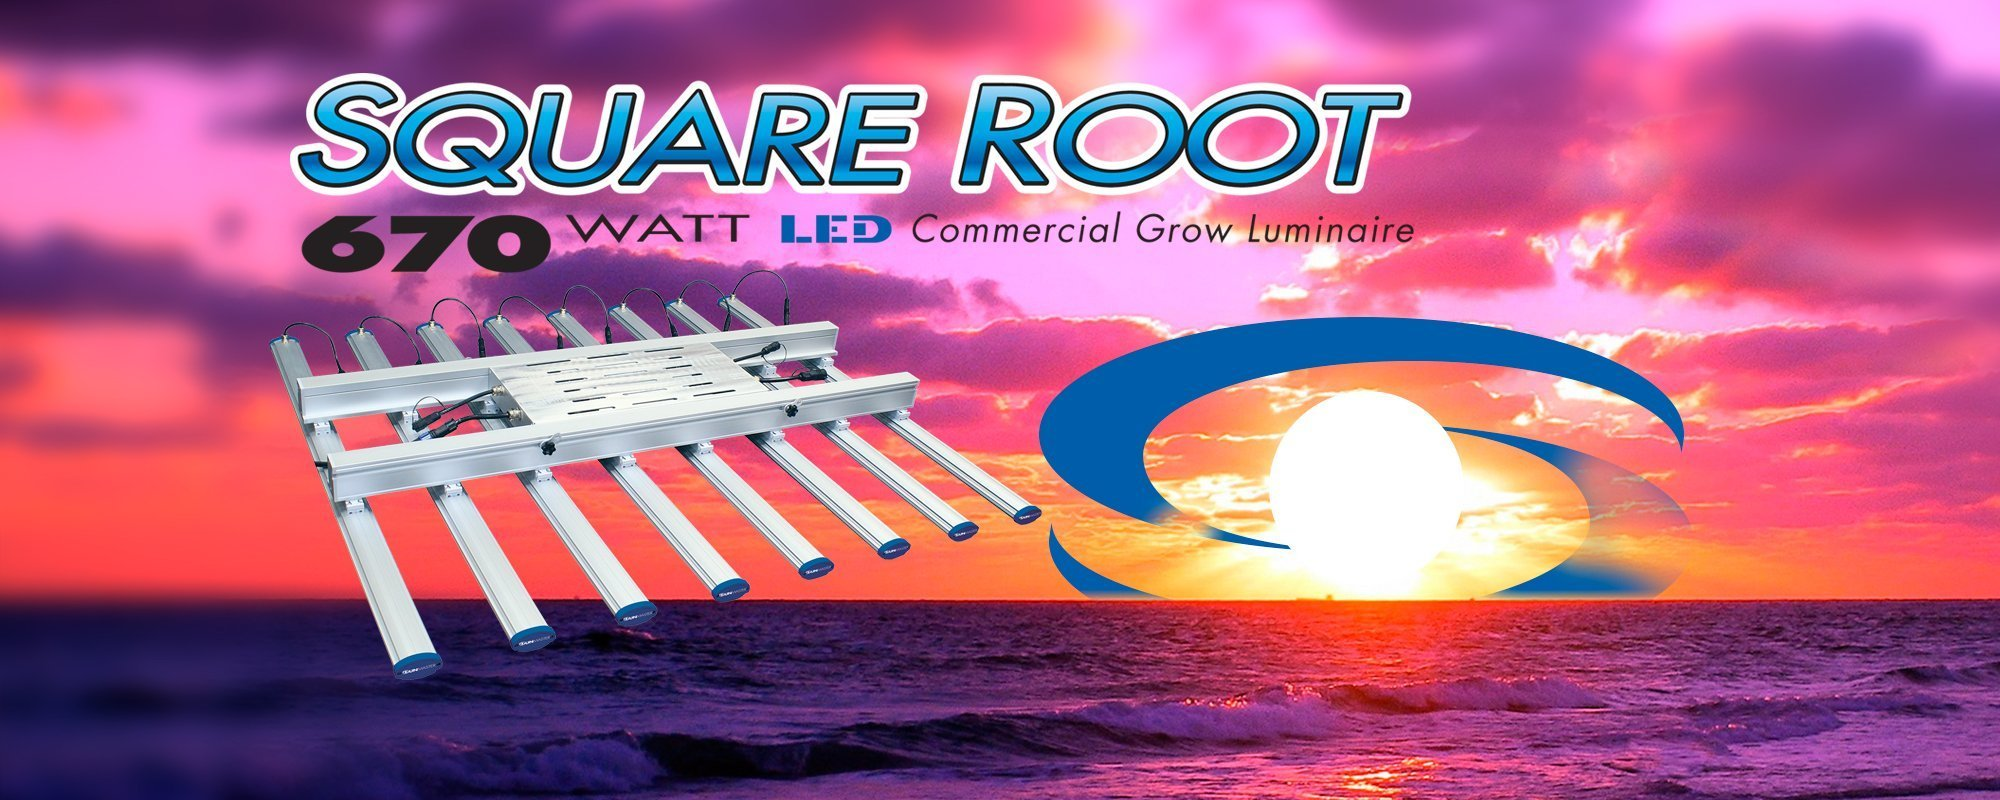 SUNMASTER Square Root 670 Watt LED Commercial Grow fixture